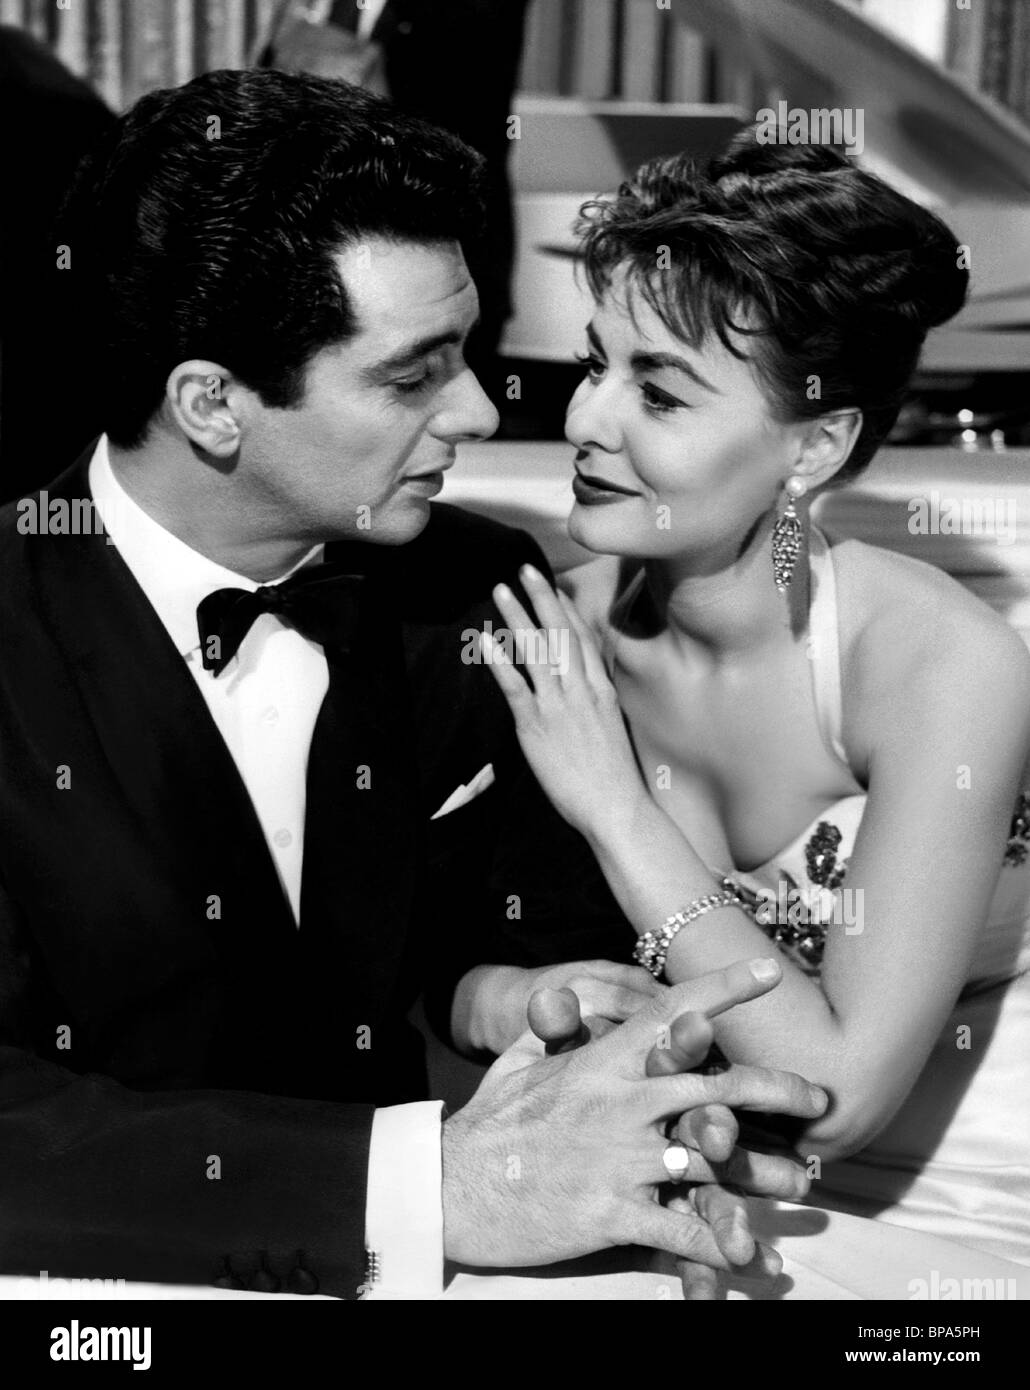 FRANKIE VAUGHAN & ANNE HEYWOOD THE HEART OF A MAN; (1959) - Stock Image